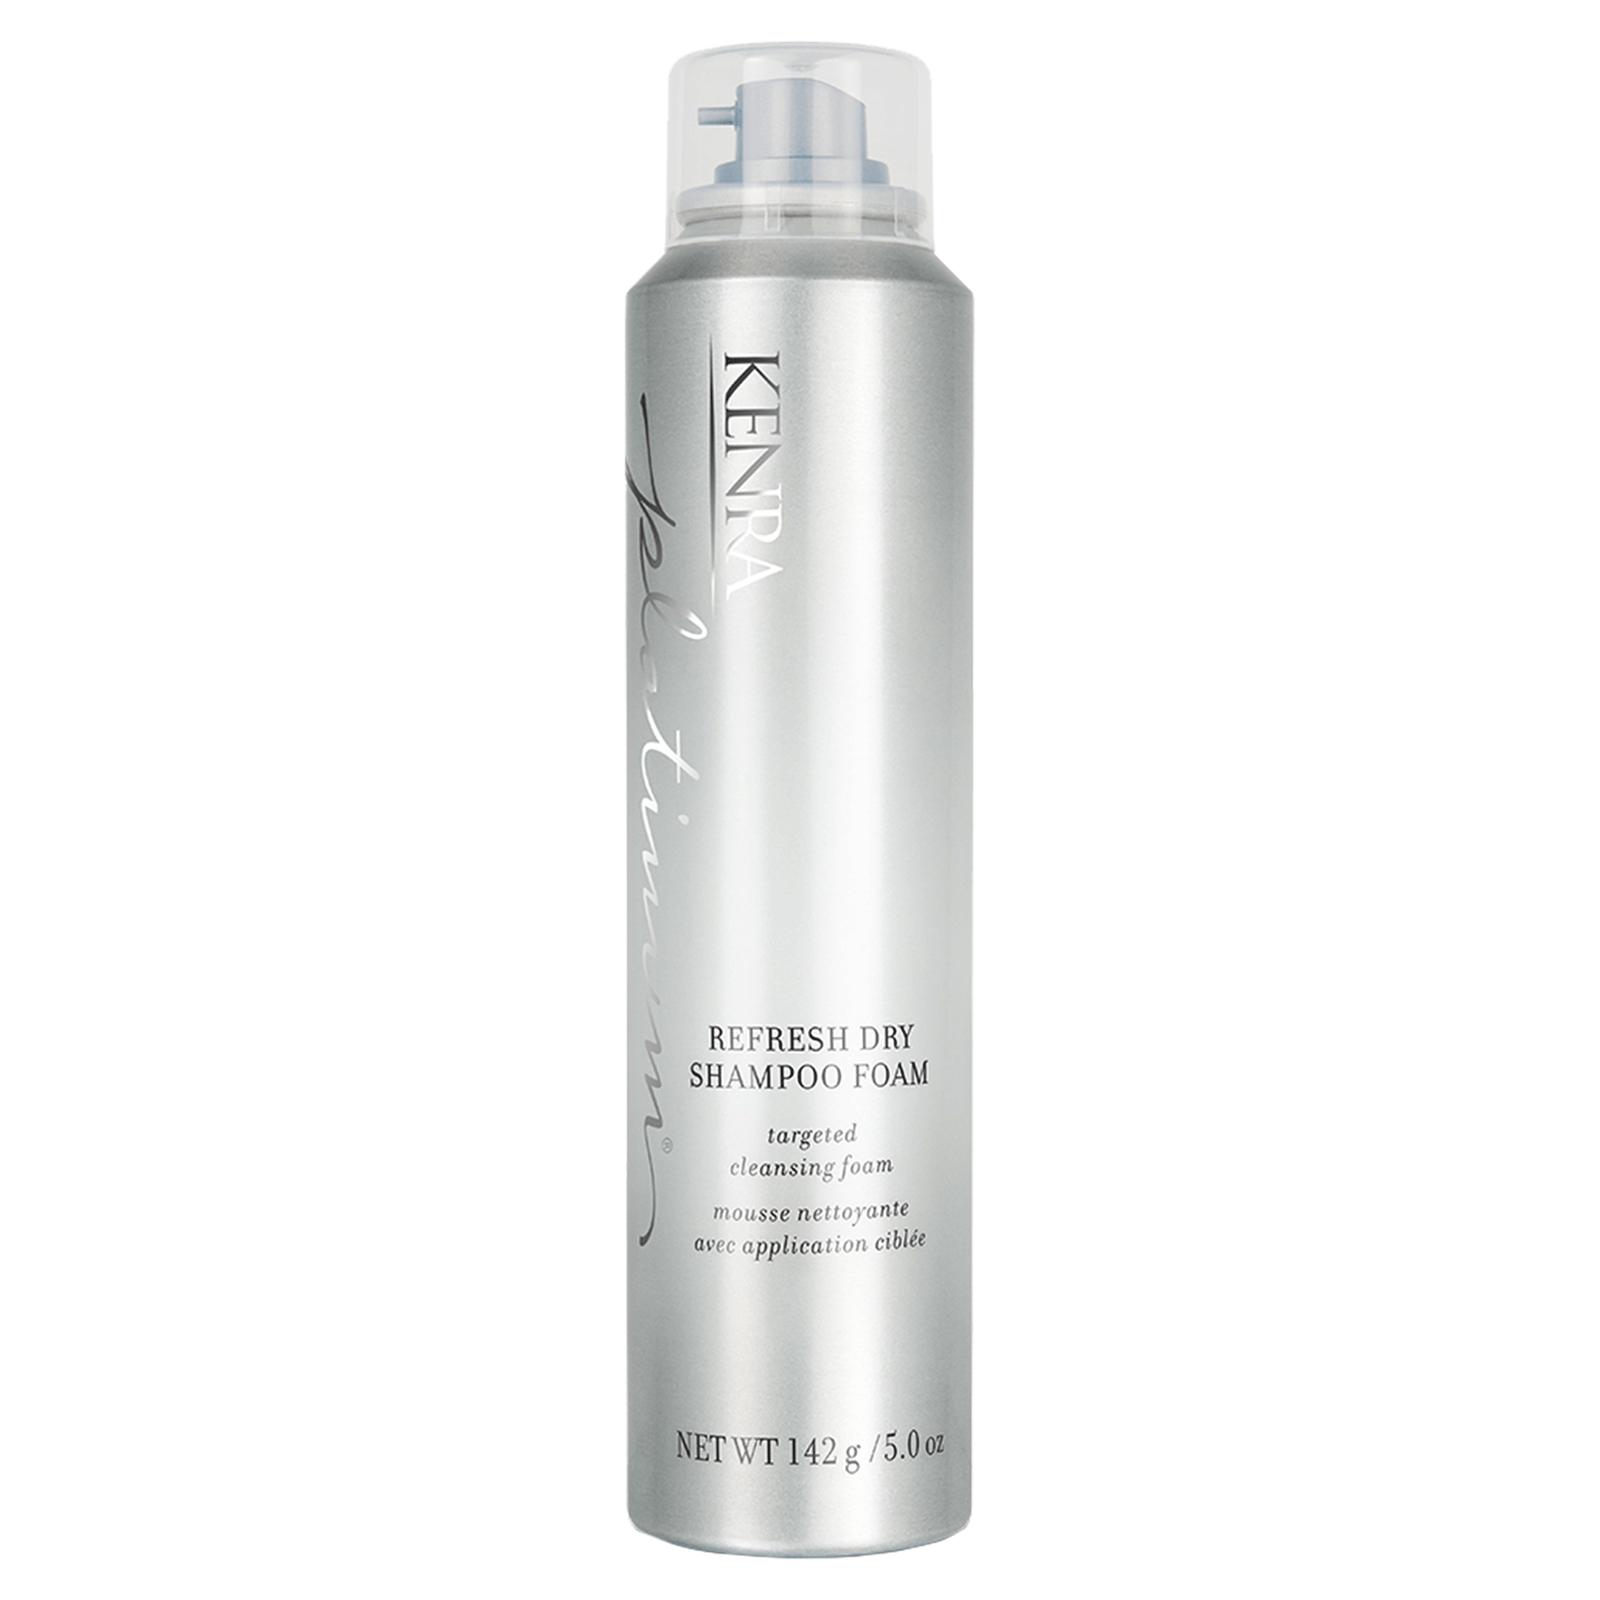 Refresh Dry Shampoo Foam